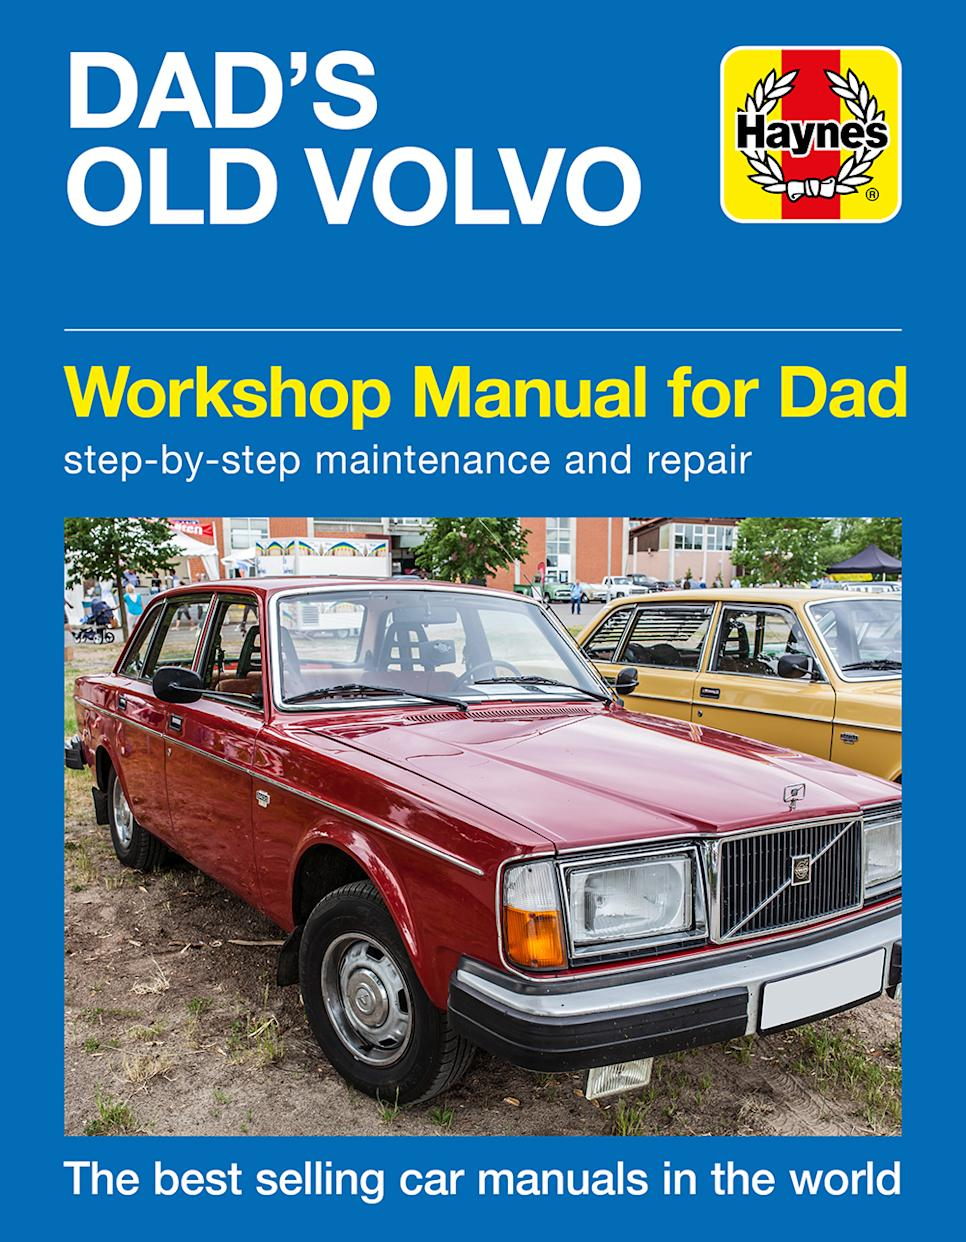 The Haynes manual can be personalised with your father's name